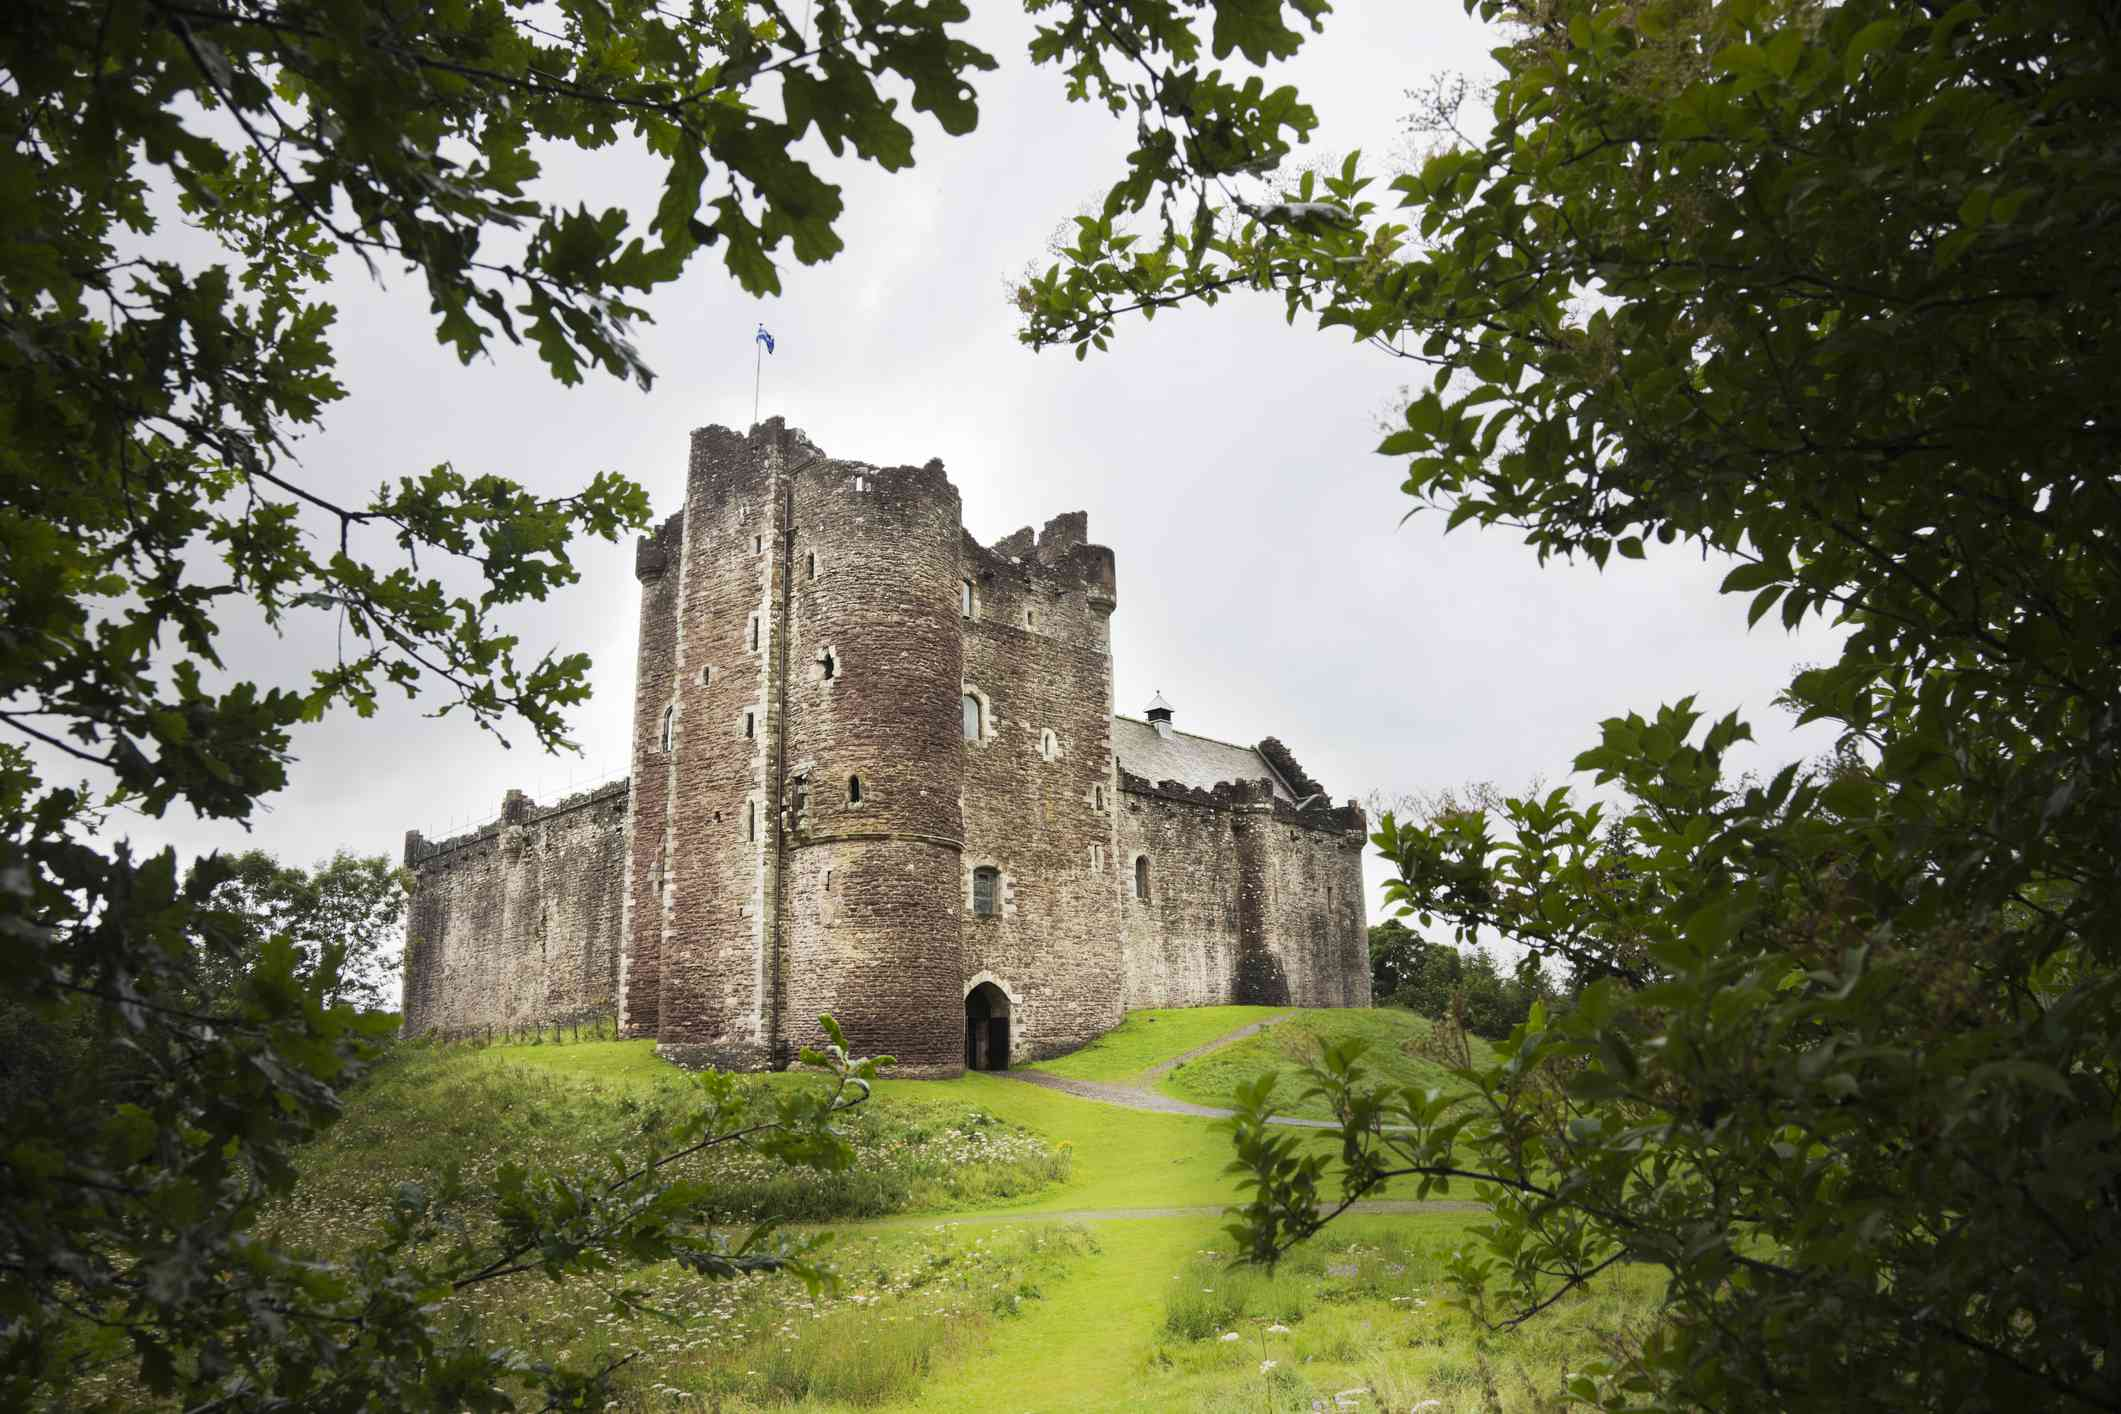 View of Doune Castle on a grass hill framed by green trees under a gray, overcast sky